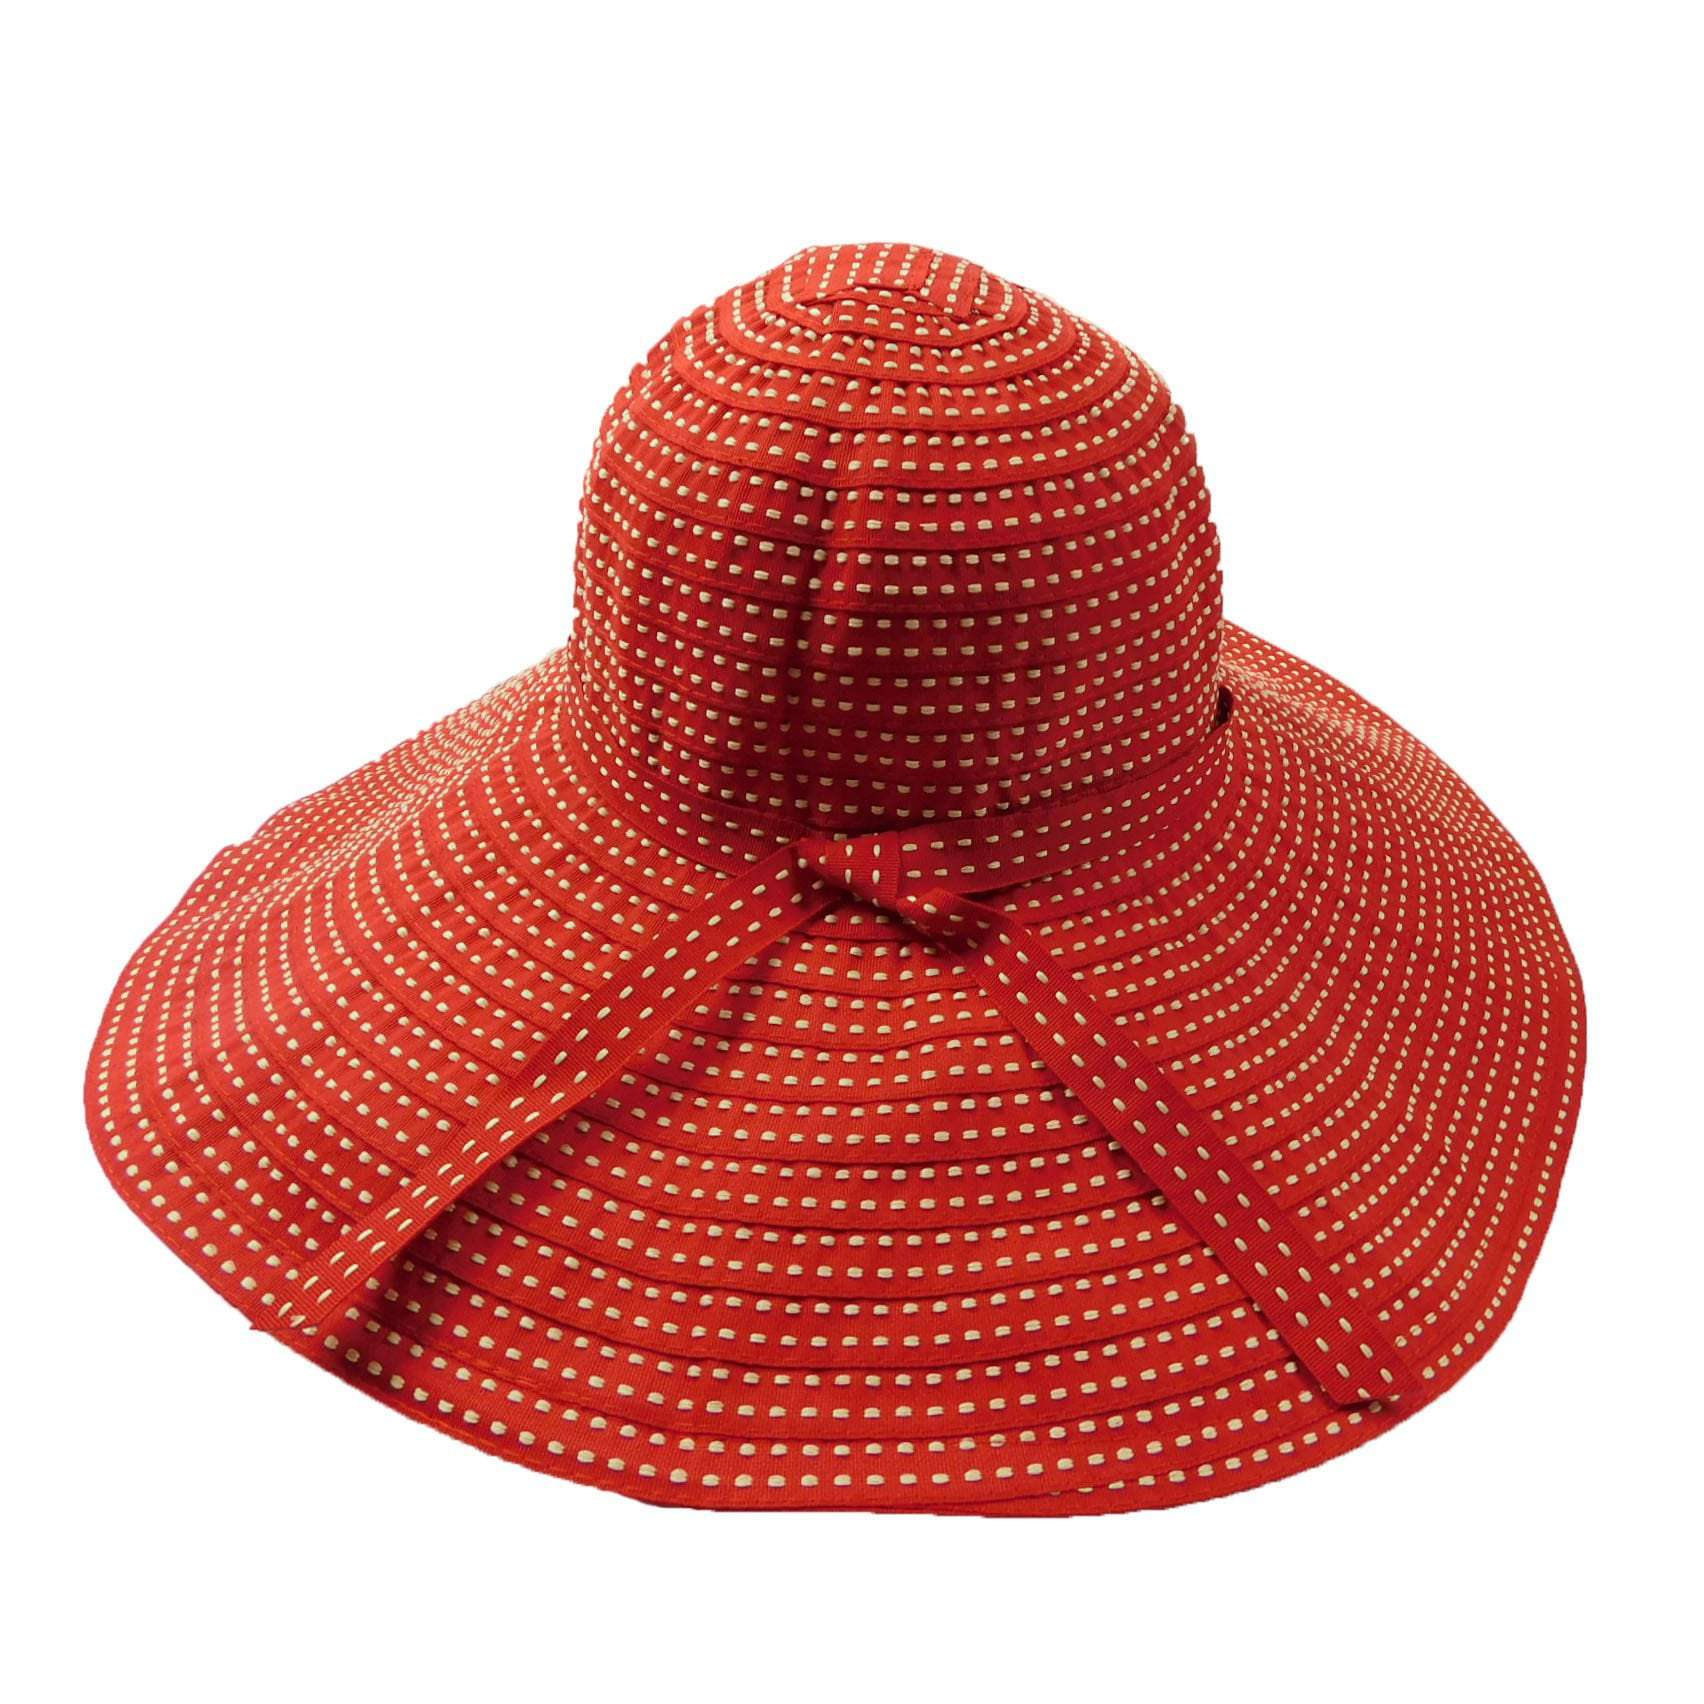 51f61d0e69e Shapeable Ribbon Floppy Sunhat